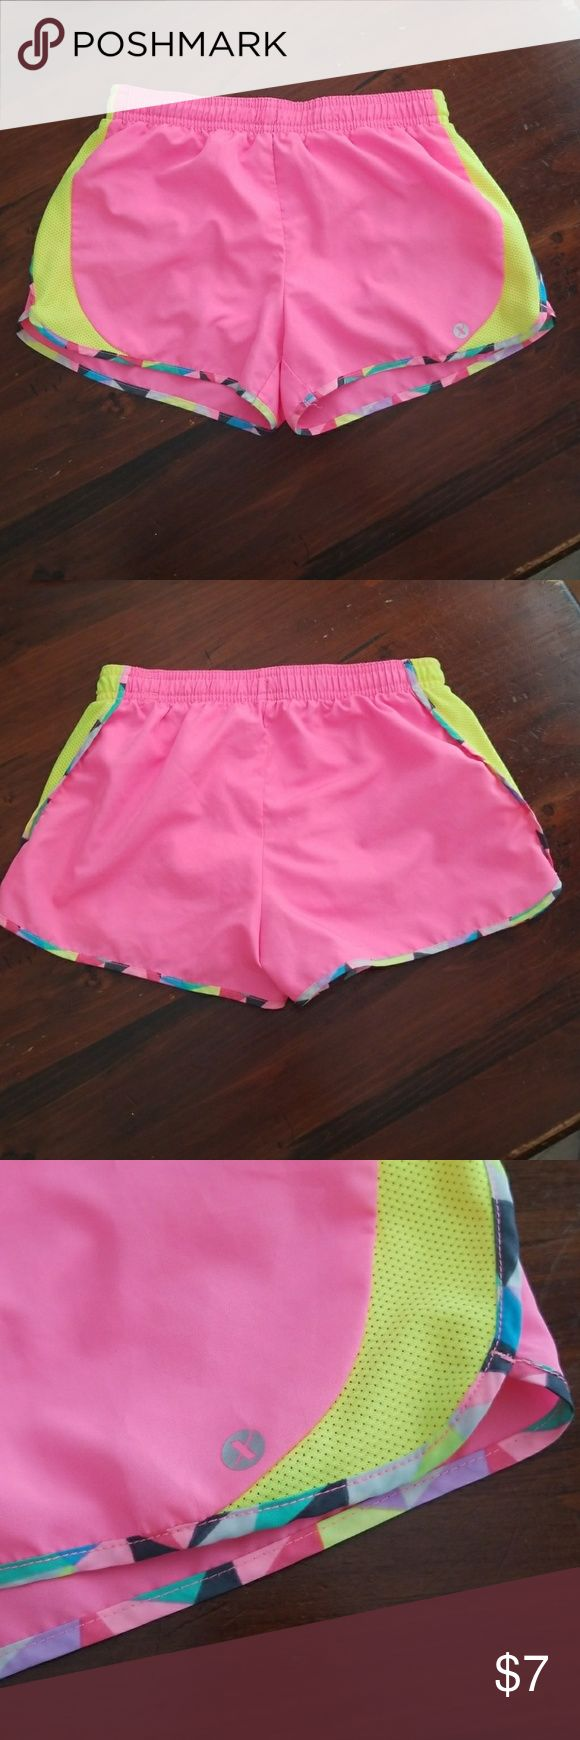 EUC Girls Athletic Shorts EUC. Underwear lined quick dry athletic shorts. Features elastic waist band and tie. Also has tightly woven mesh on the sides to keep your kiddo cool on hot summer days! Shorts are pink, neon yellow with a mix of colors boarder as shown in 3rd picture. Selling for my niece :]  Make an offer! Xersion Bottoms Shorts